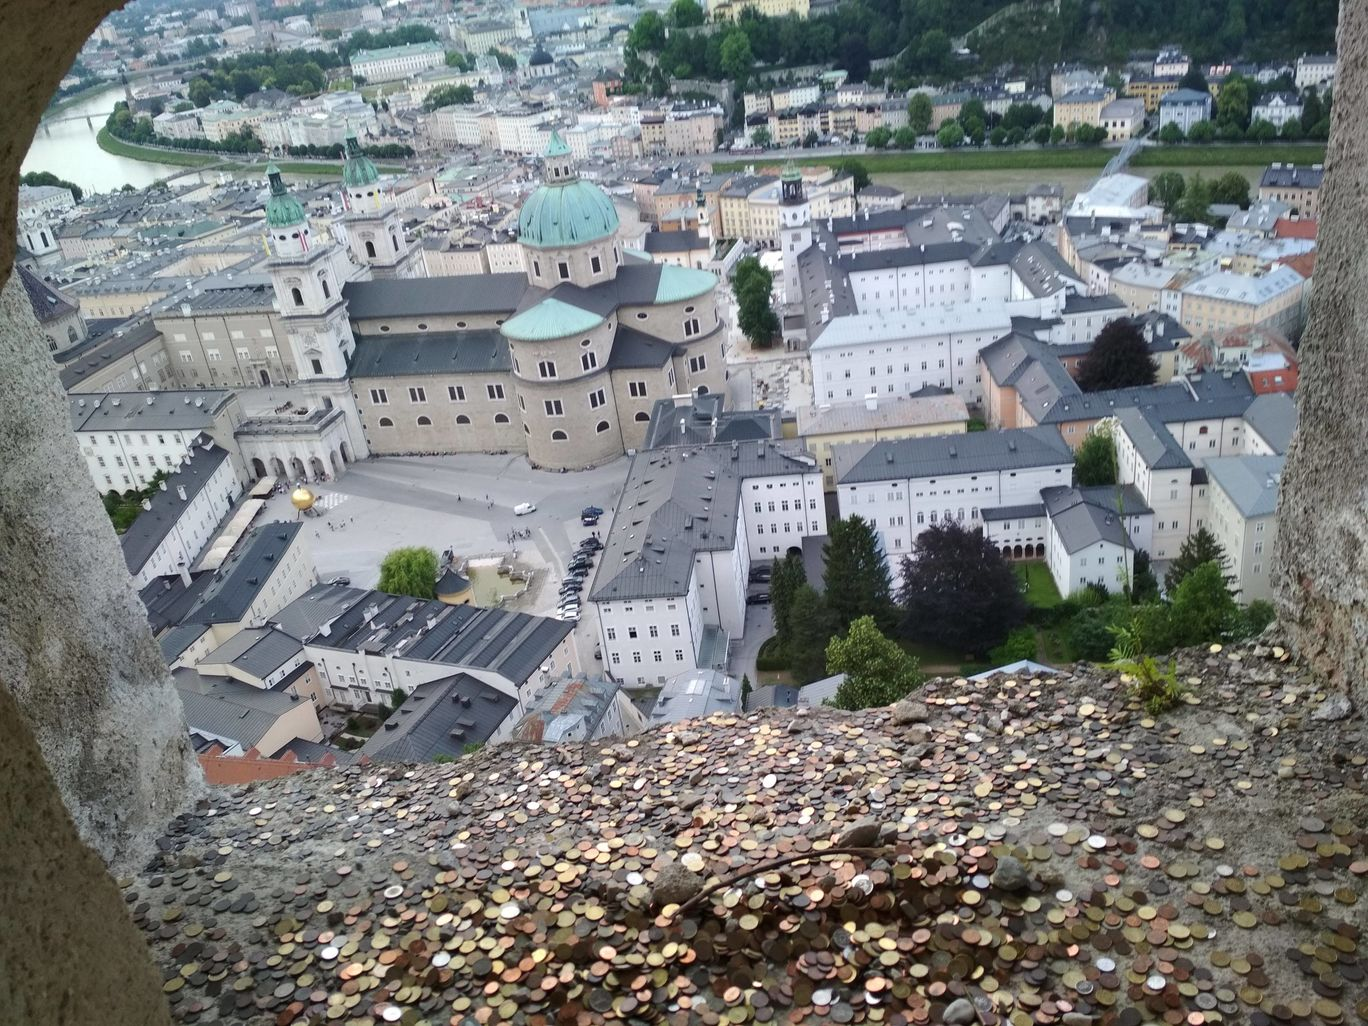 Photo of Fortress Hohensalzburg By Nit Dos